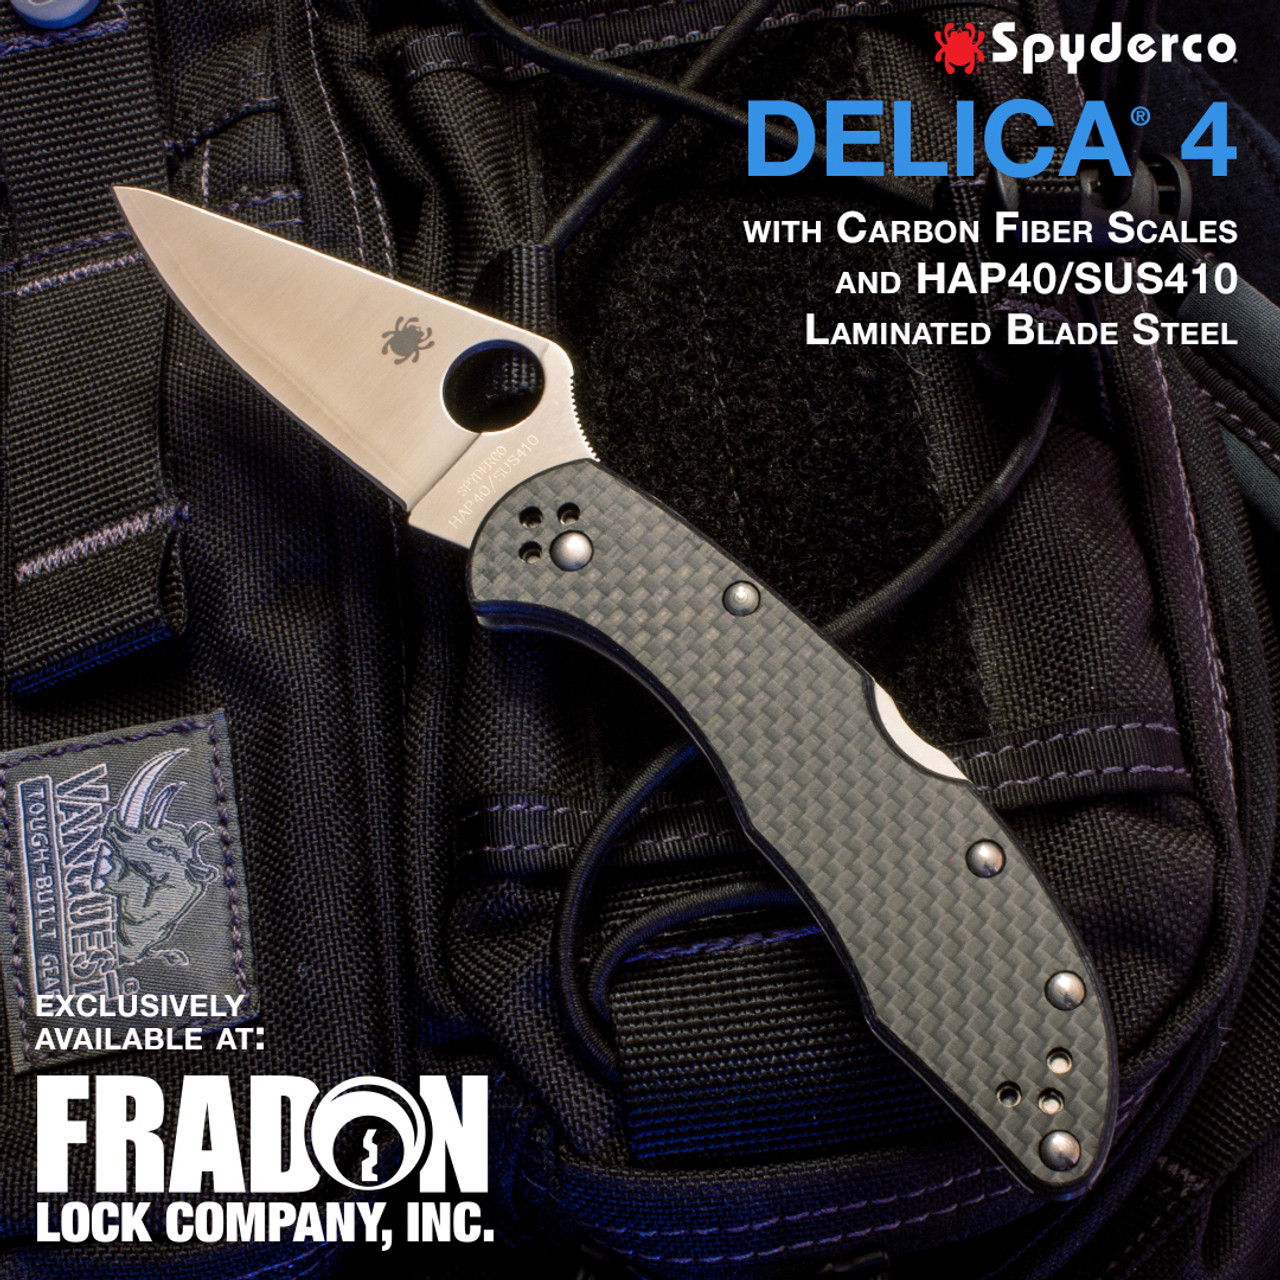 Spyderco Exclusive For Fradon Delica C11FPCFE HAP40/SUS410 Carbon Fiber Knife